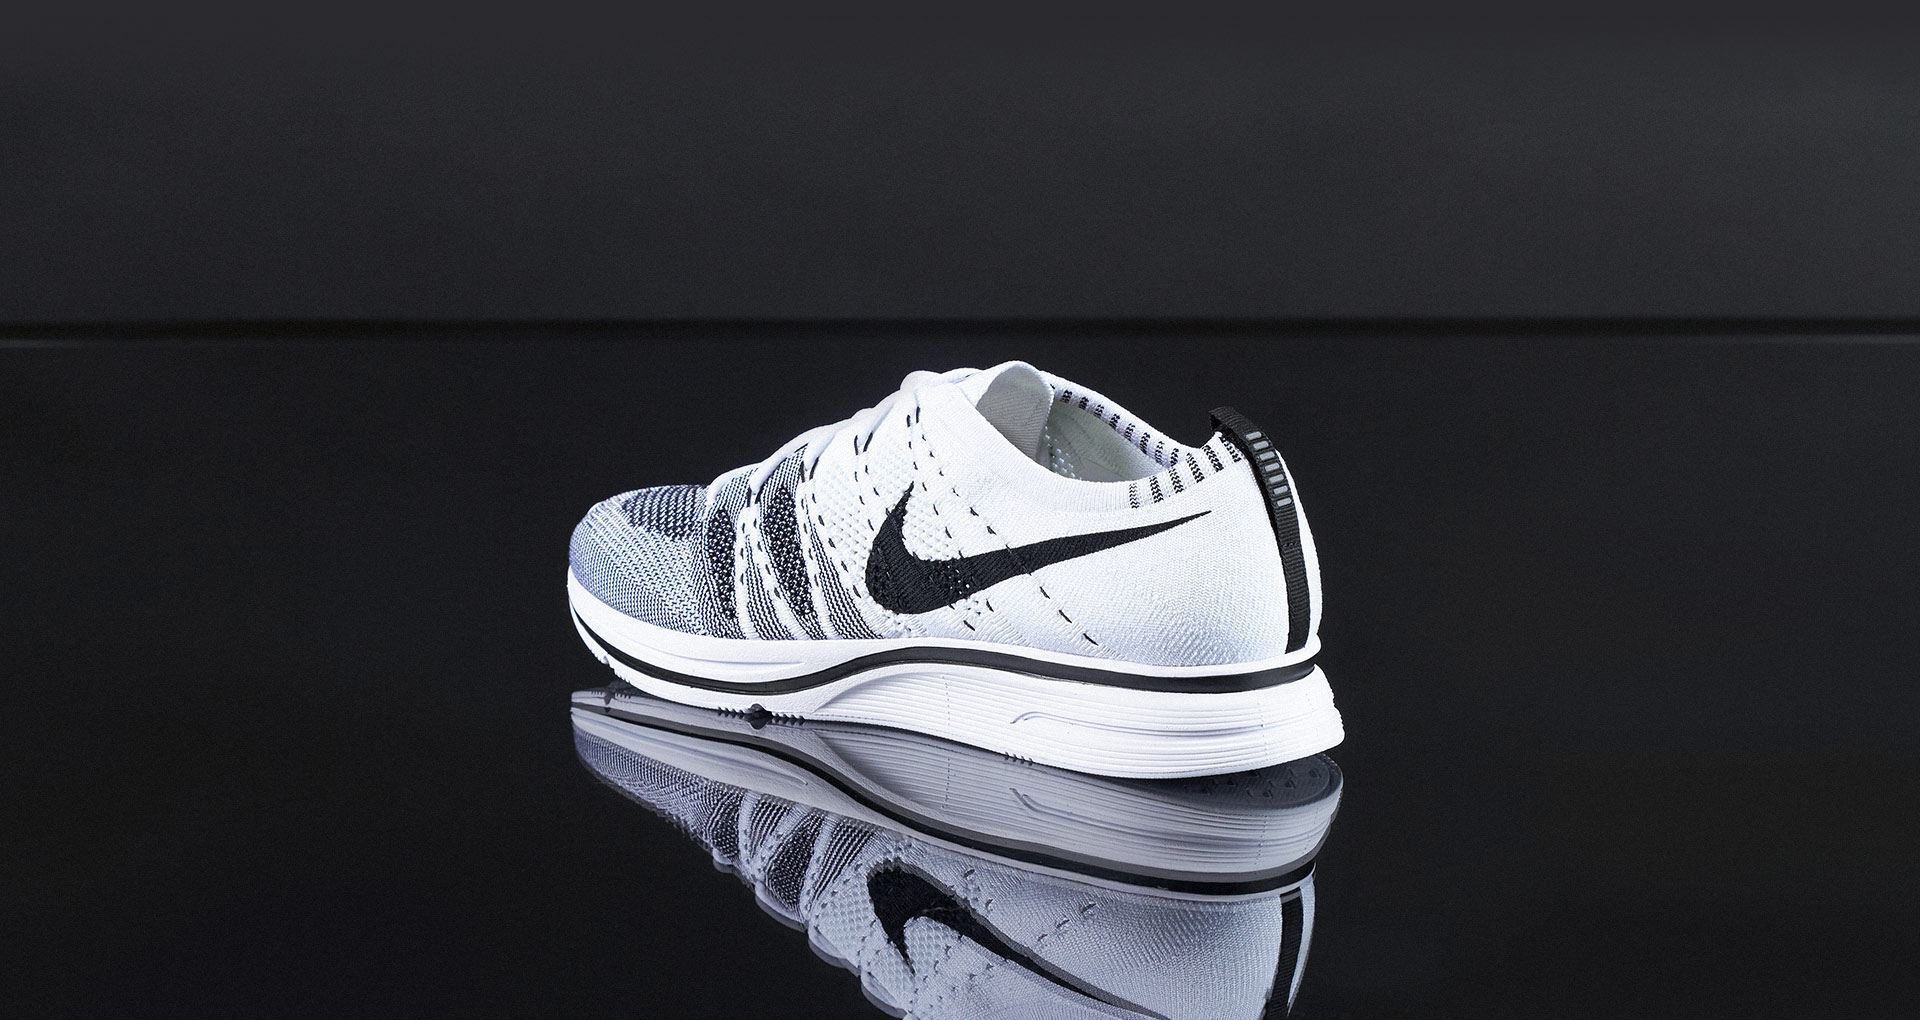 6 Days 6 Sneakers 1 Flyknit Trainer